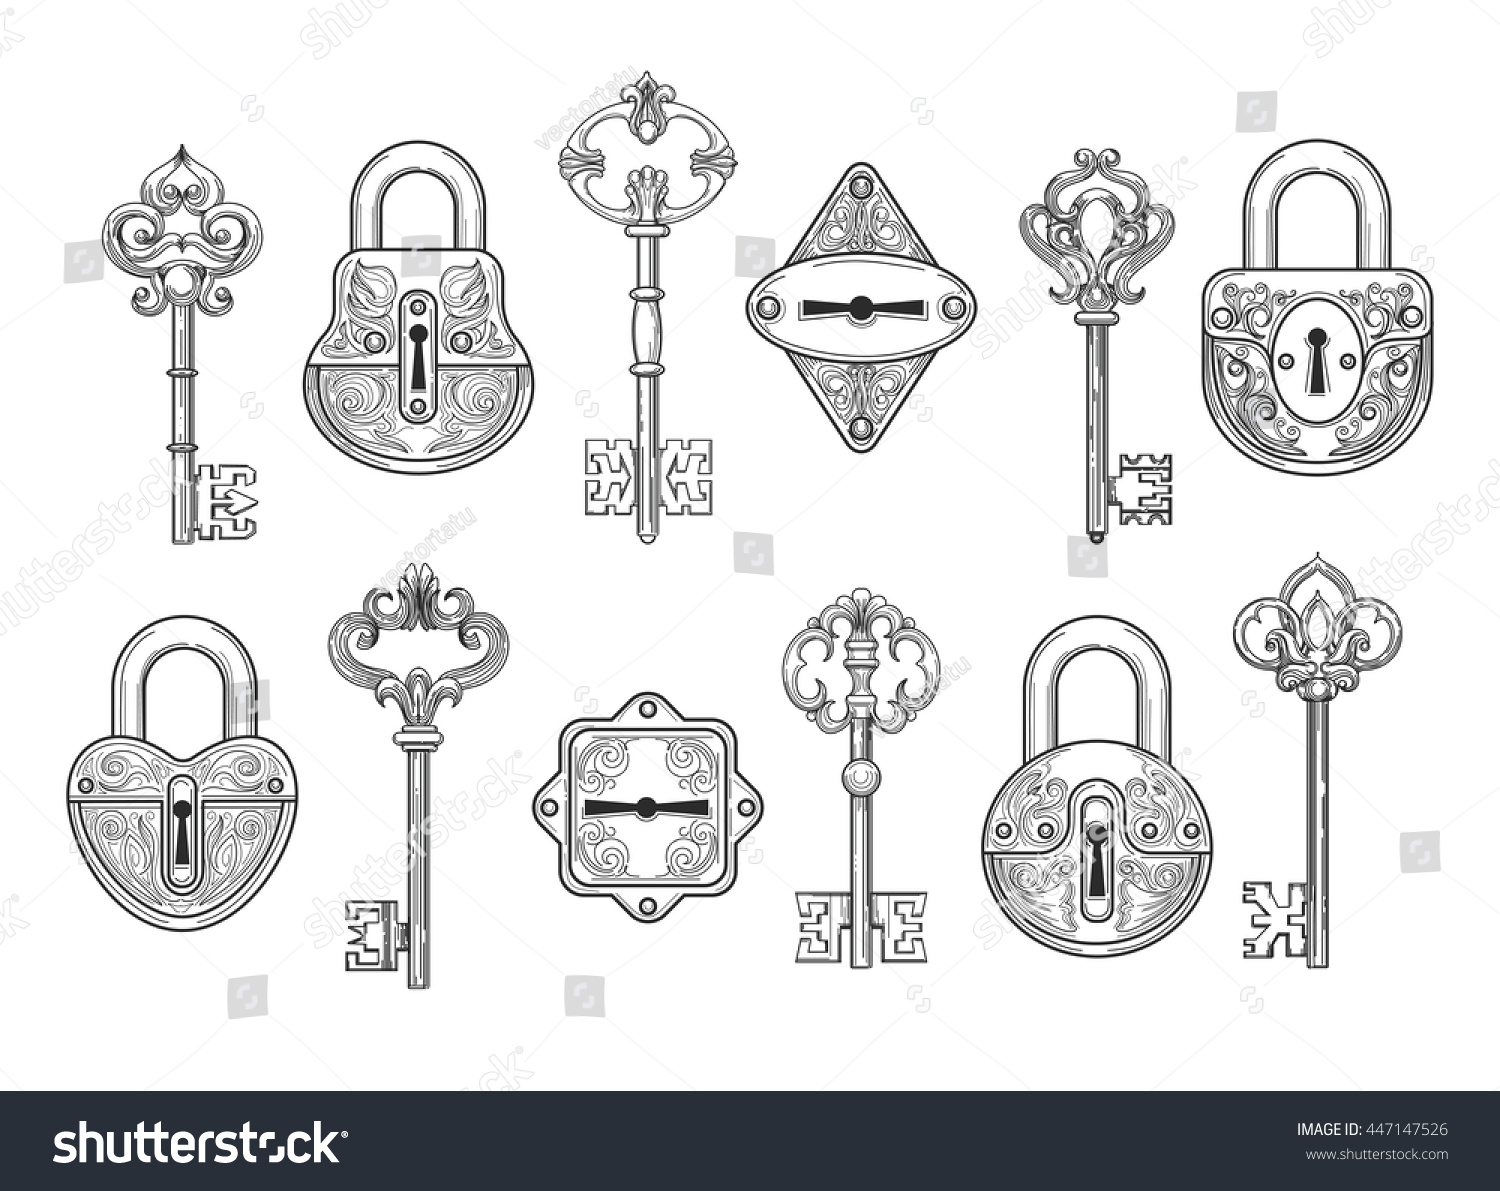 Vintage Key Keyhole And Lock Set Or Victorian Padlock Elements Vector Illustration 447147526